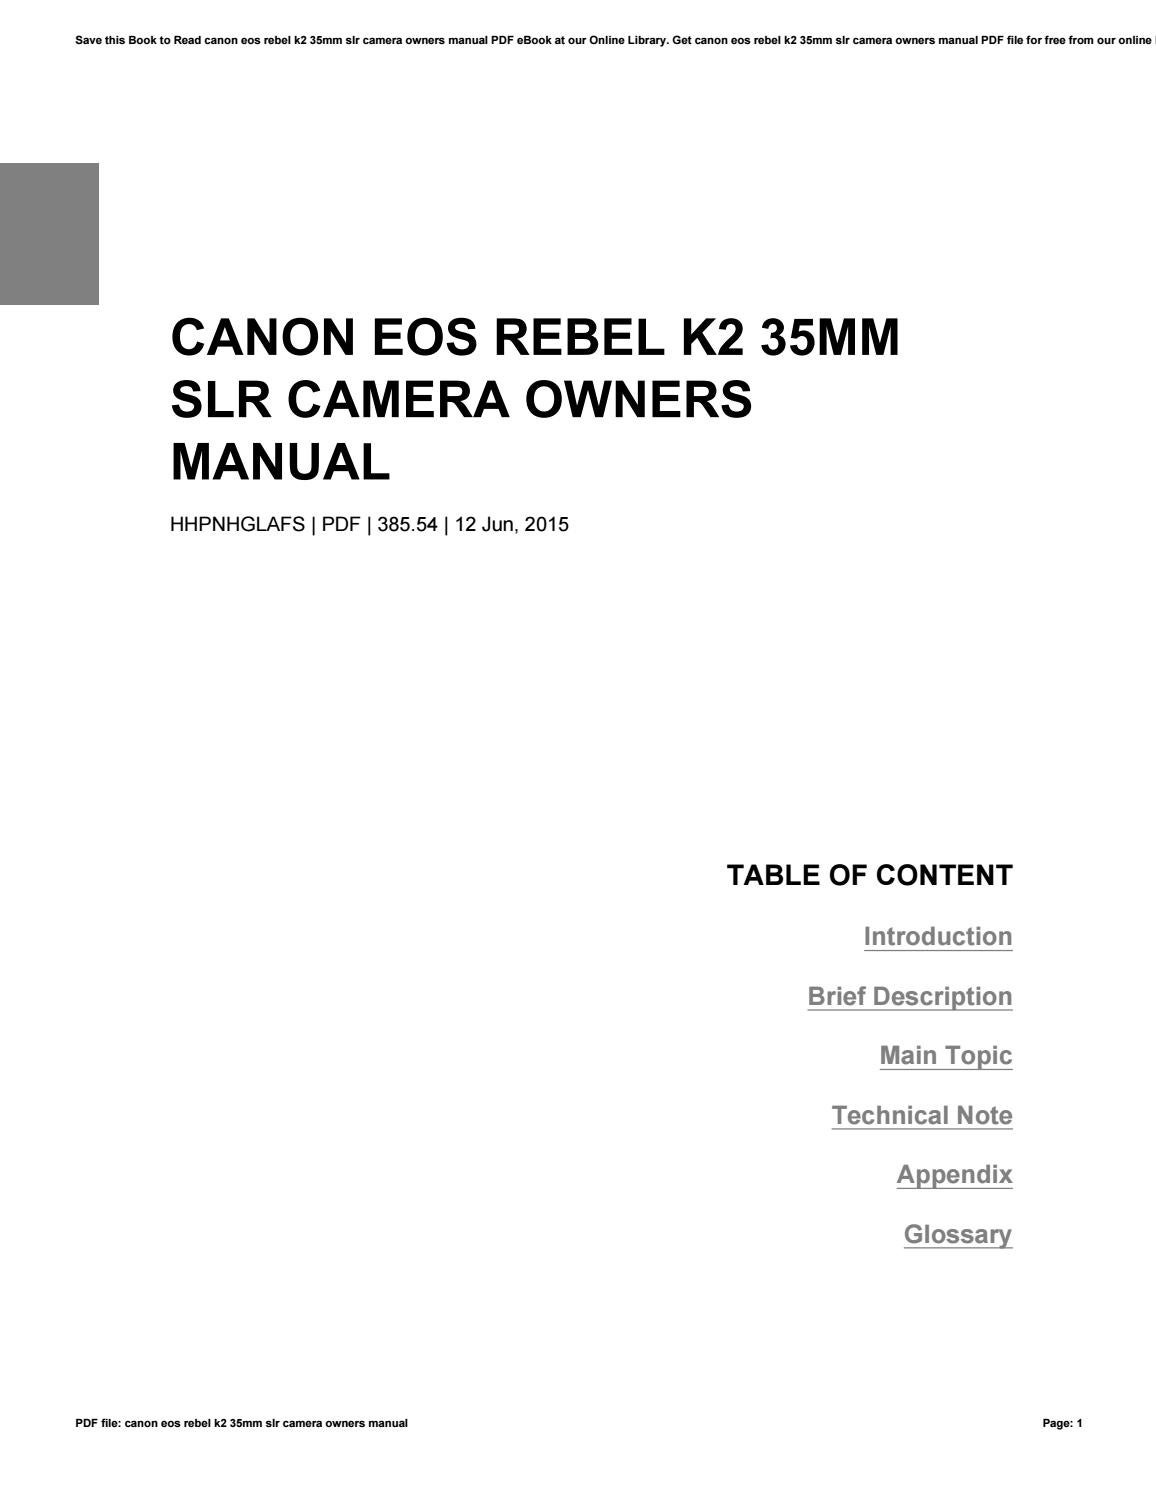 Canon eos rebel k2 35mm slr camera owners manual by ugimail918 - issuu